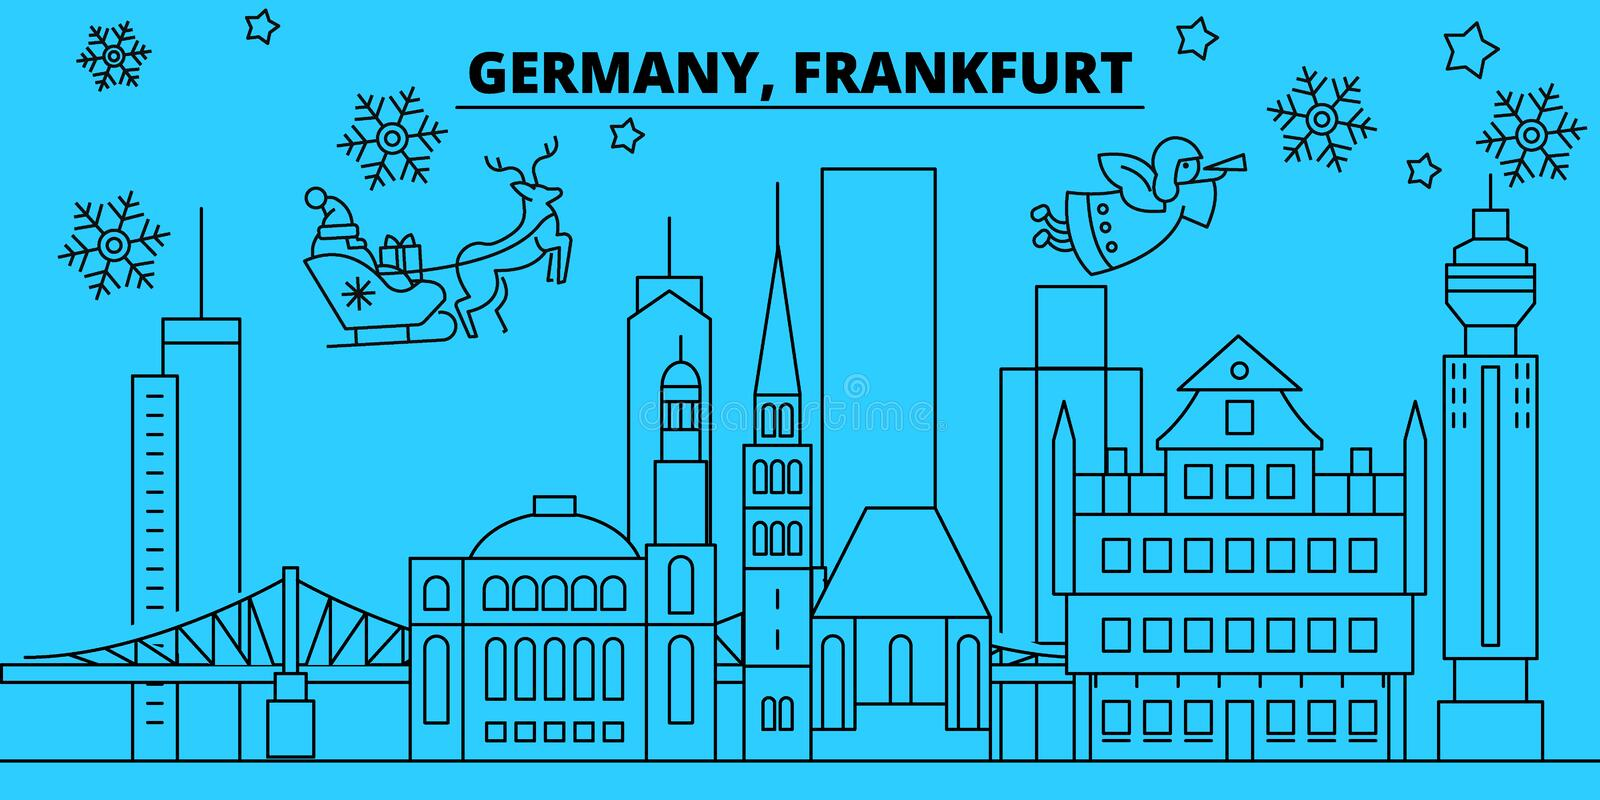 Germany, Frankfurt winter holidays skyline. Merry Christmas, Happy New Year decorated banner with Santa Claus.Germany. Germany, Frankfurt winter holidays skyline royalty free illustration